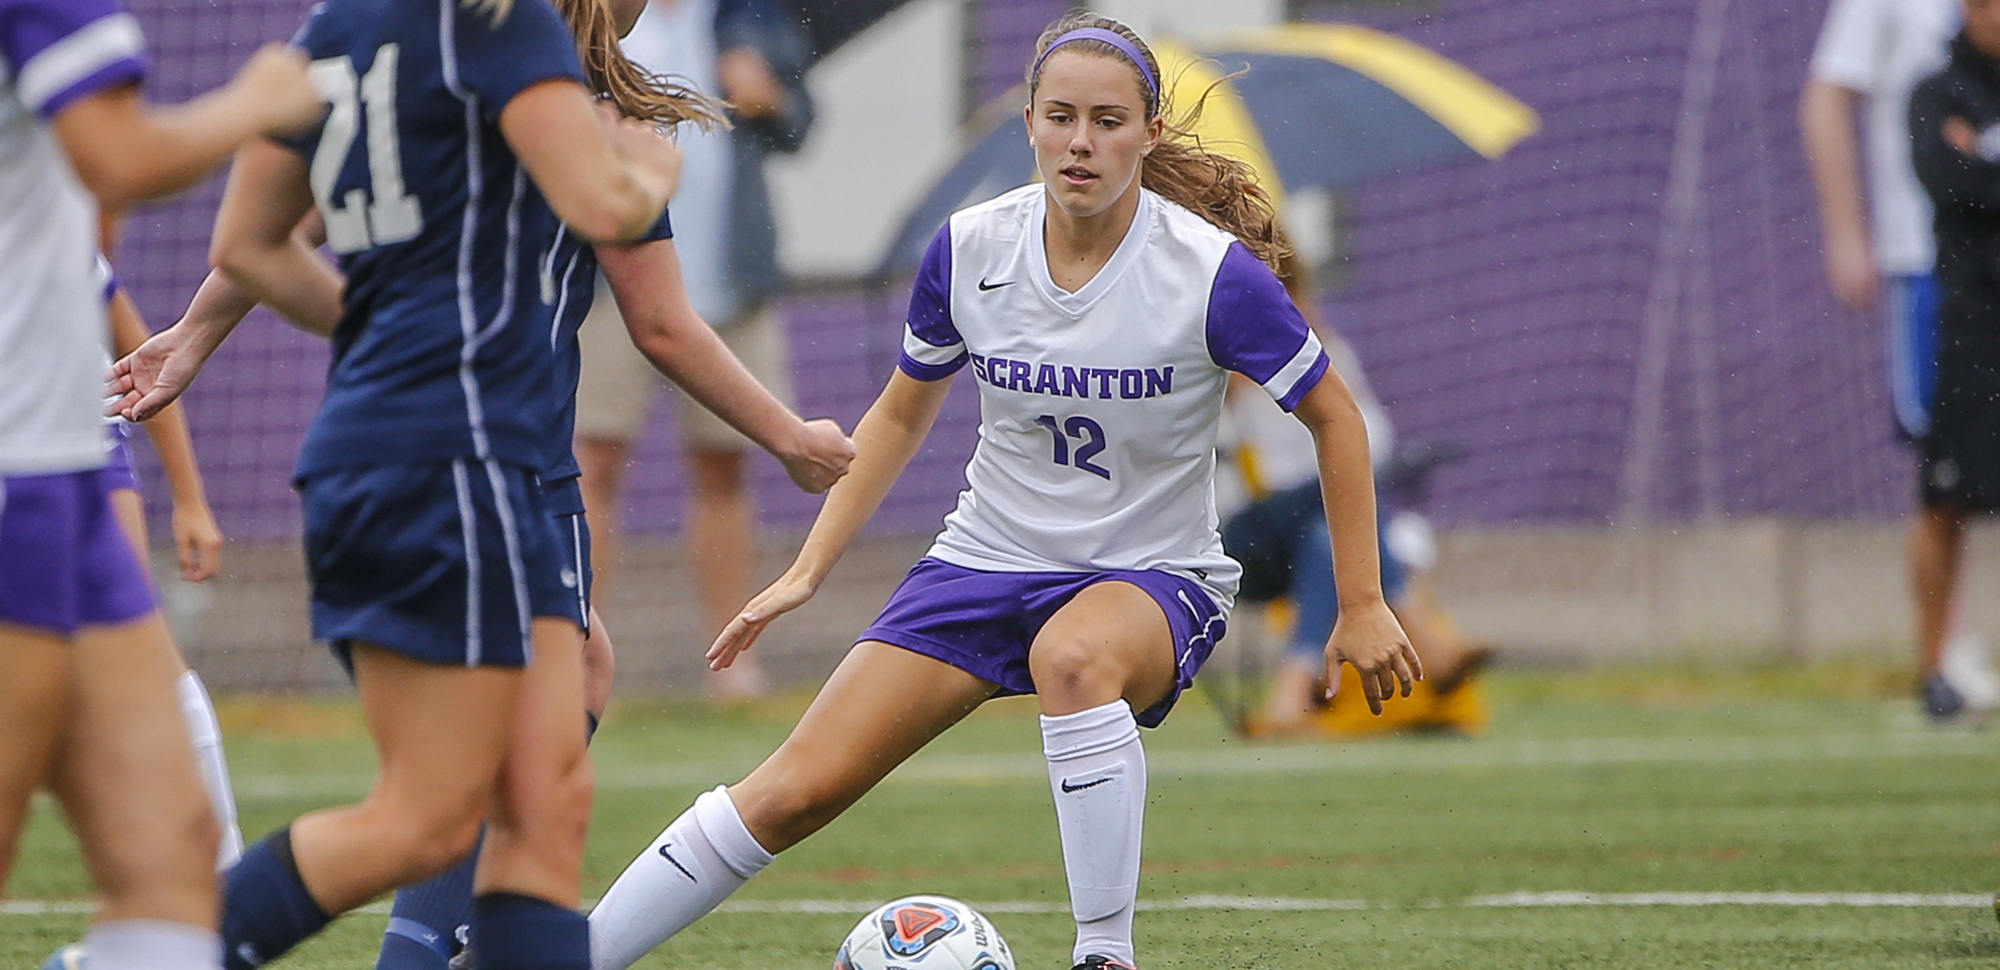 Sophomore Brittany Uricchio scored the match-winning goal late in the first overtime period on Tuesday night.